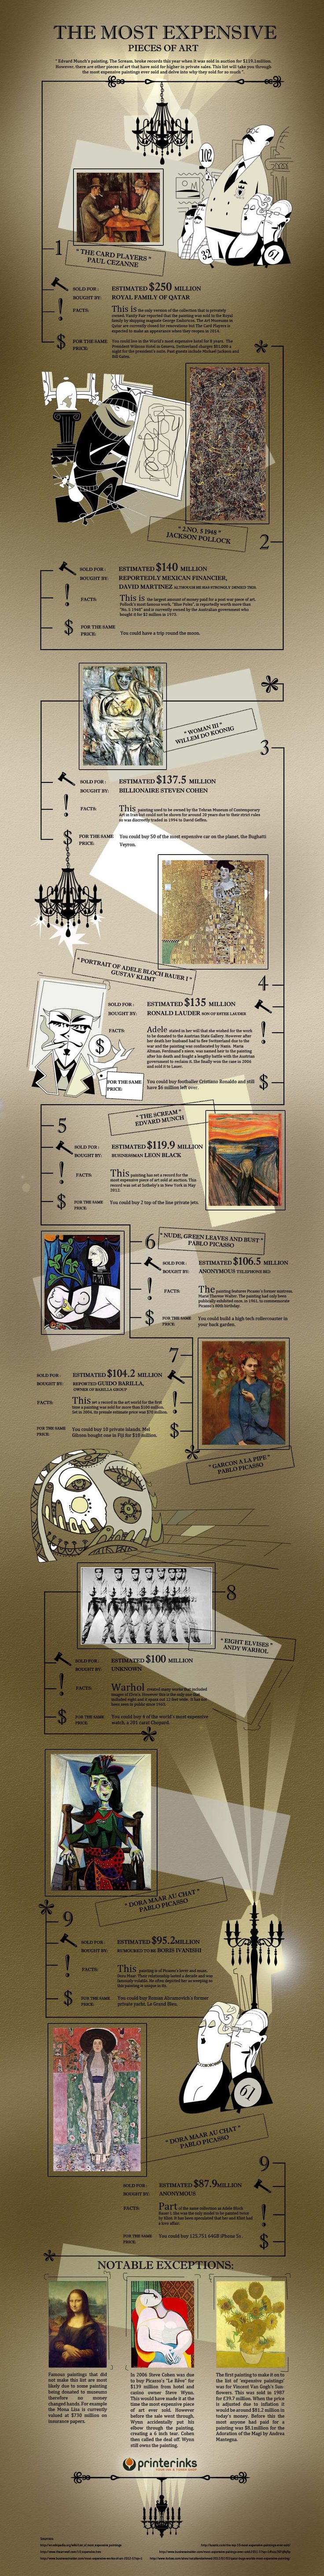 The Most Expensive Pieces of Art #infographic